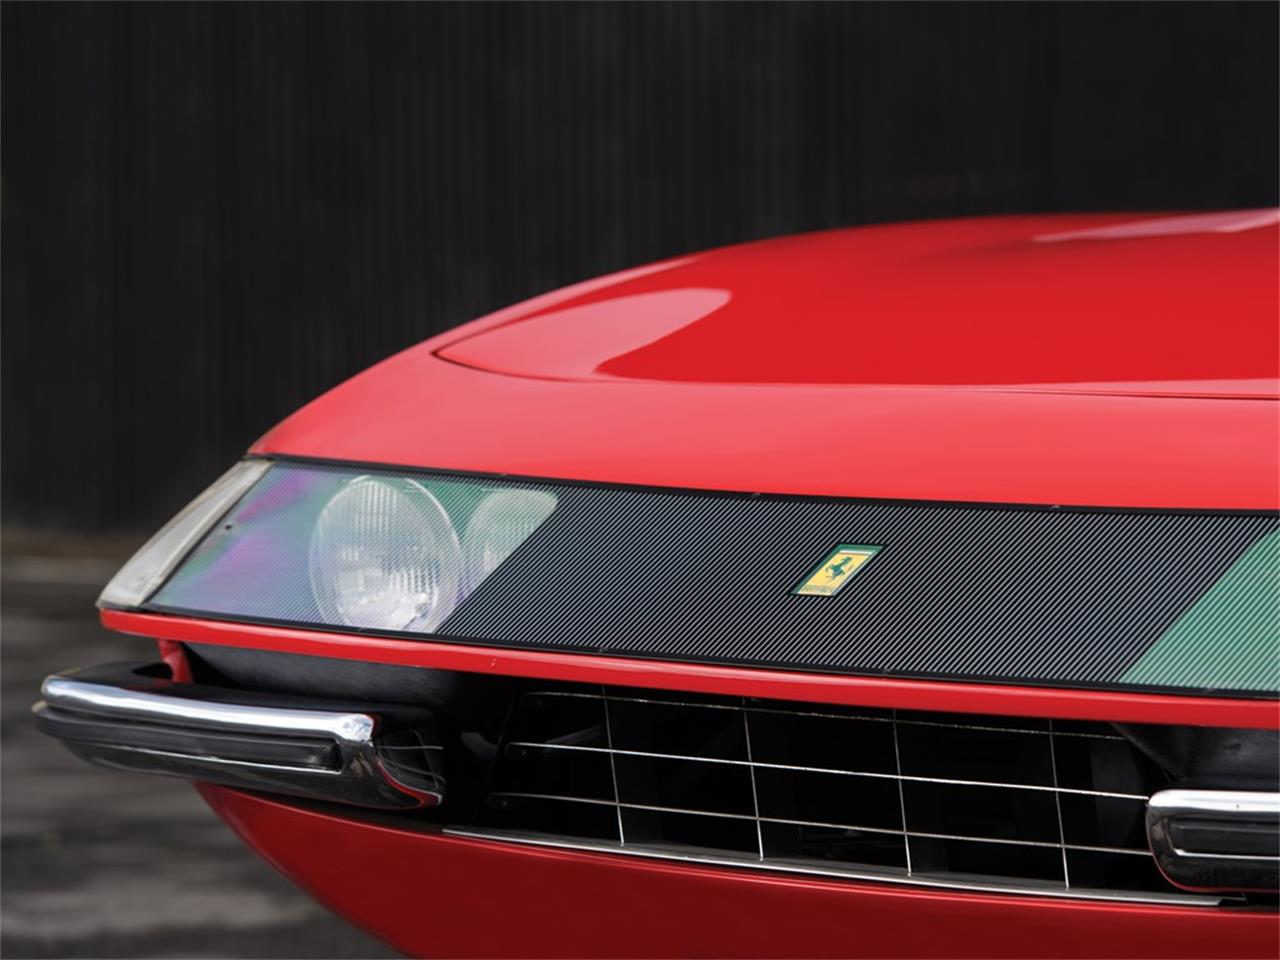 Large Picture of '70 365 GTB/4 Daytona Berlinetta - PMS7